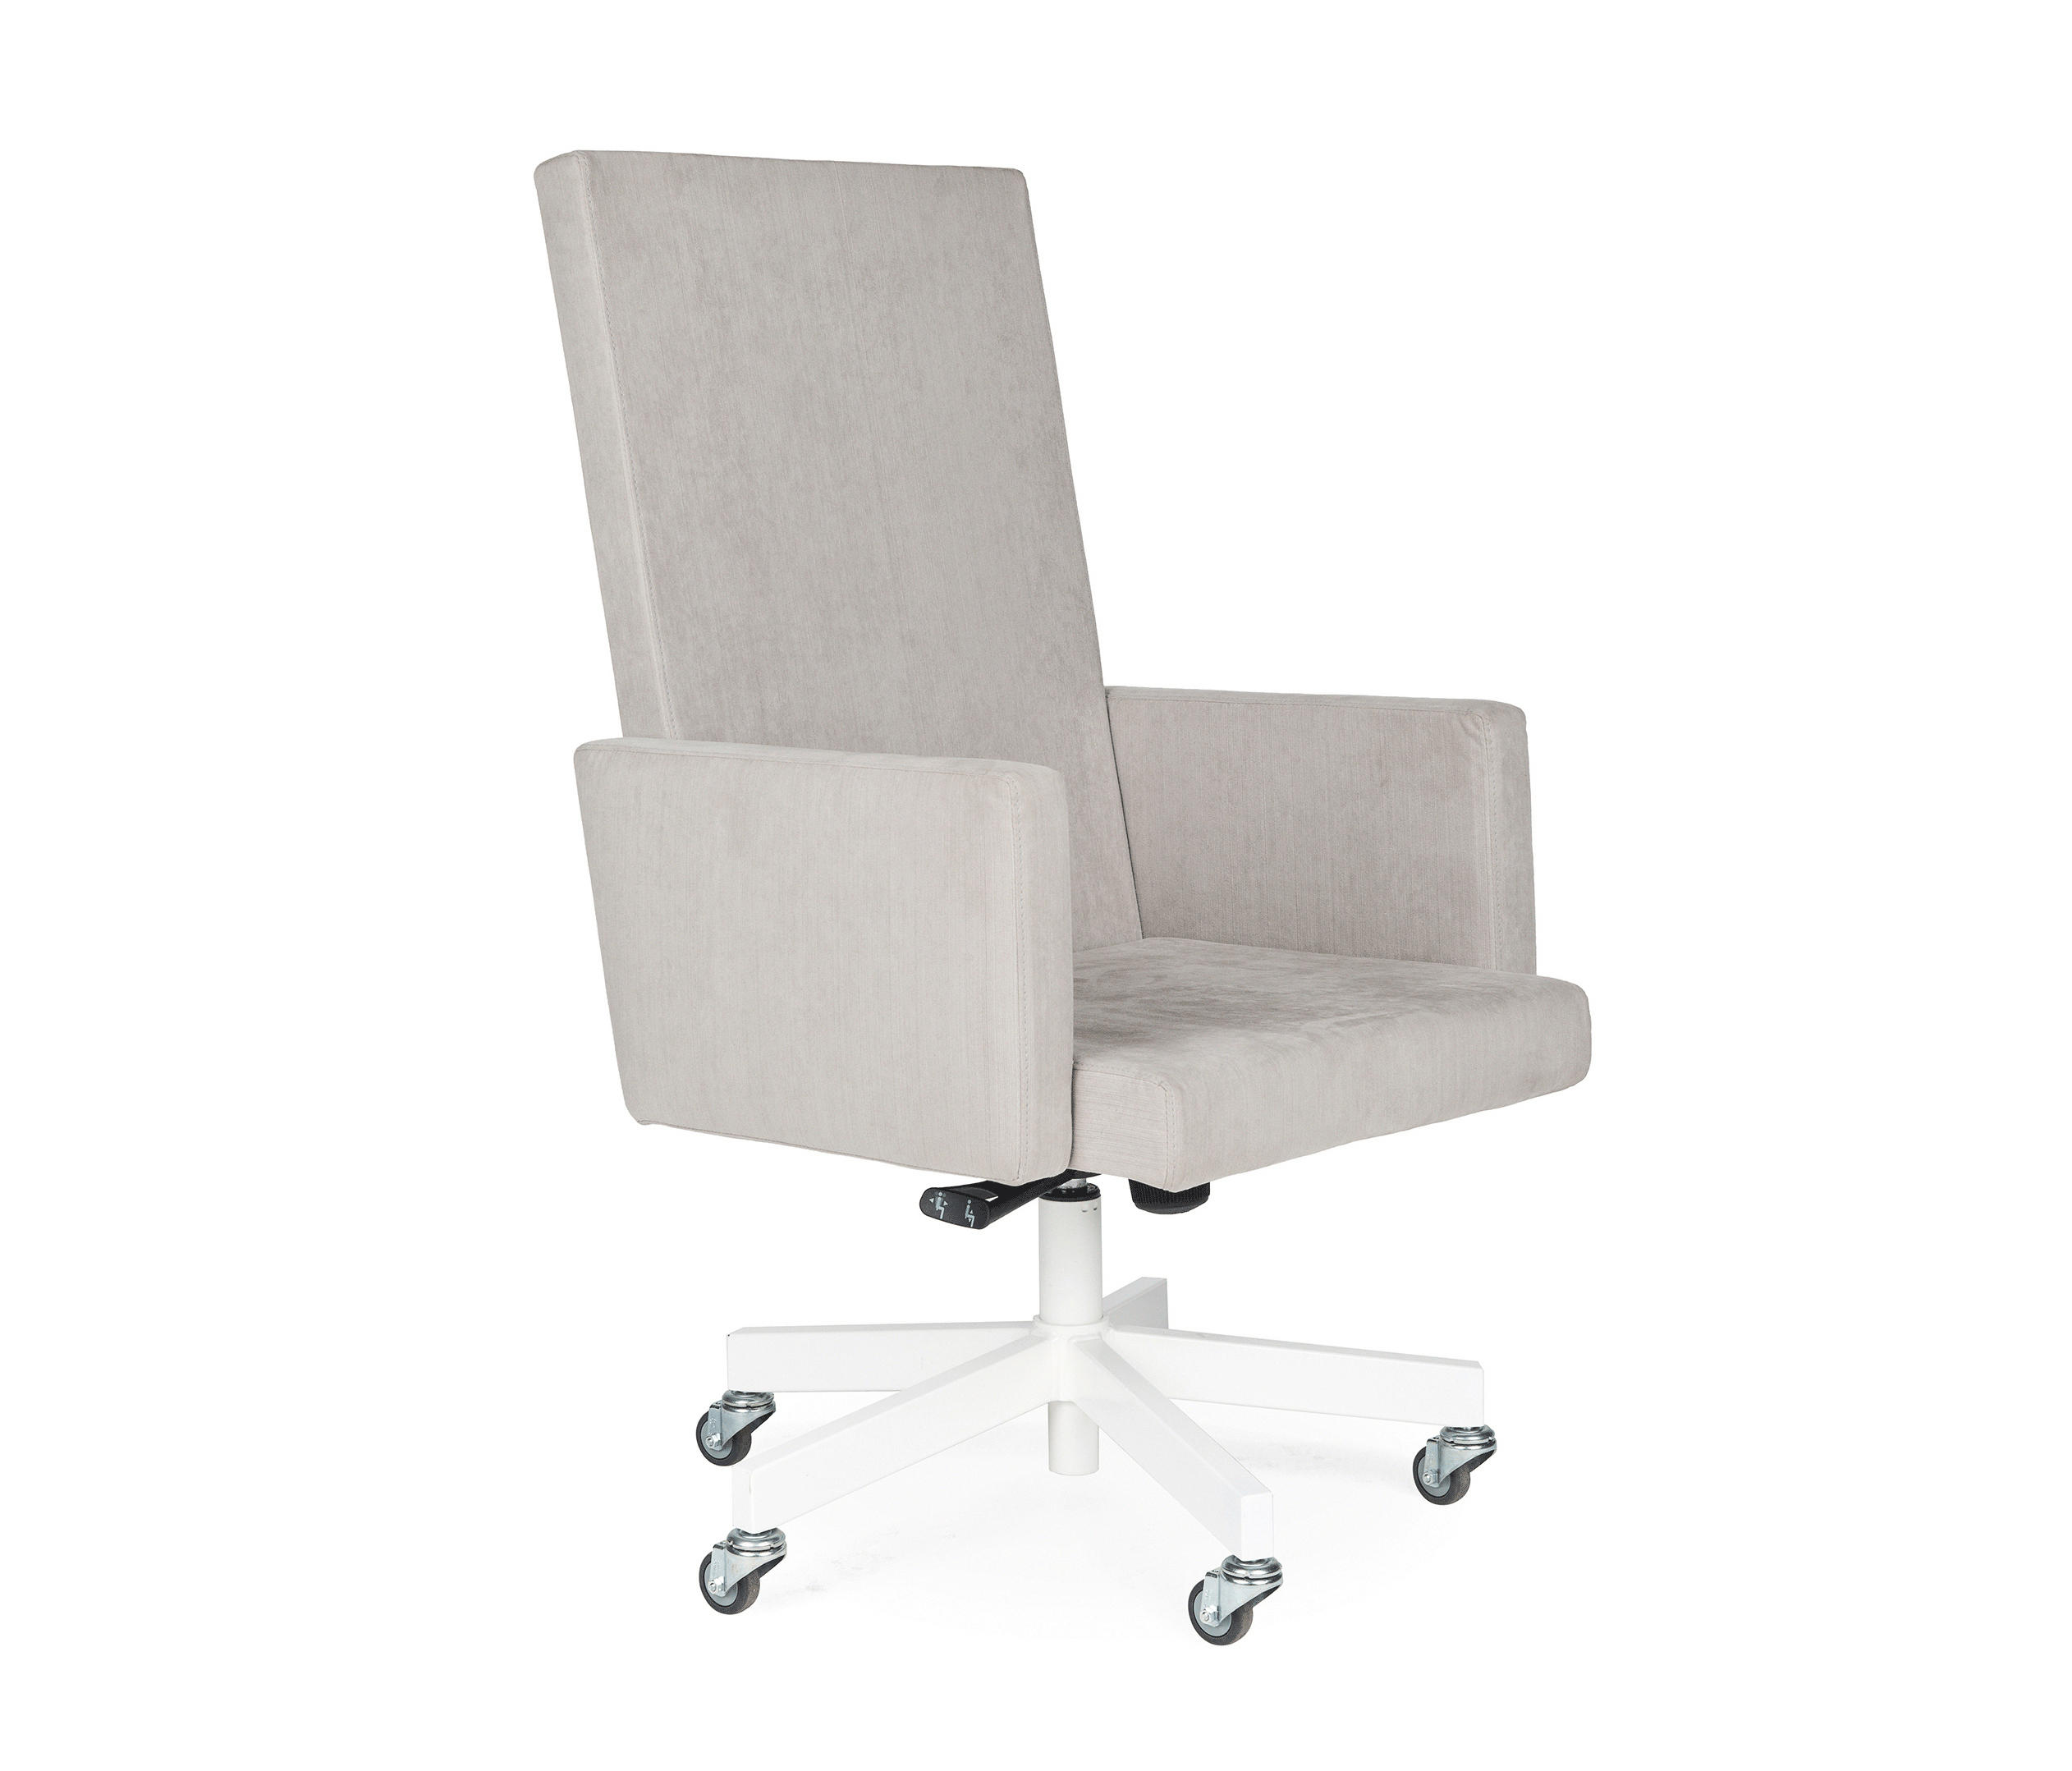 Beau ... AVL Presidential Chair By Lensvelt | Chairs ...